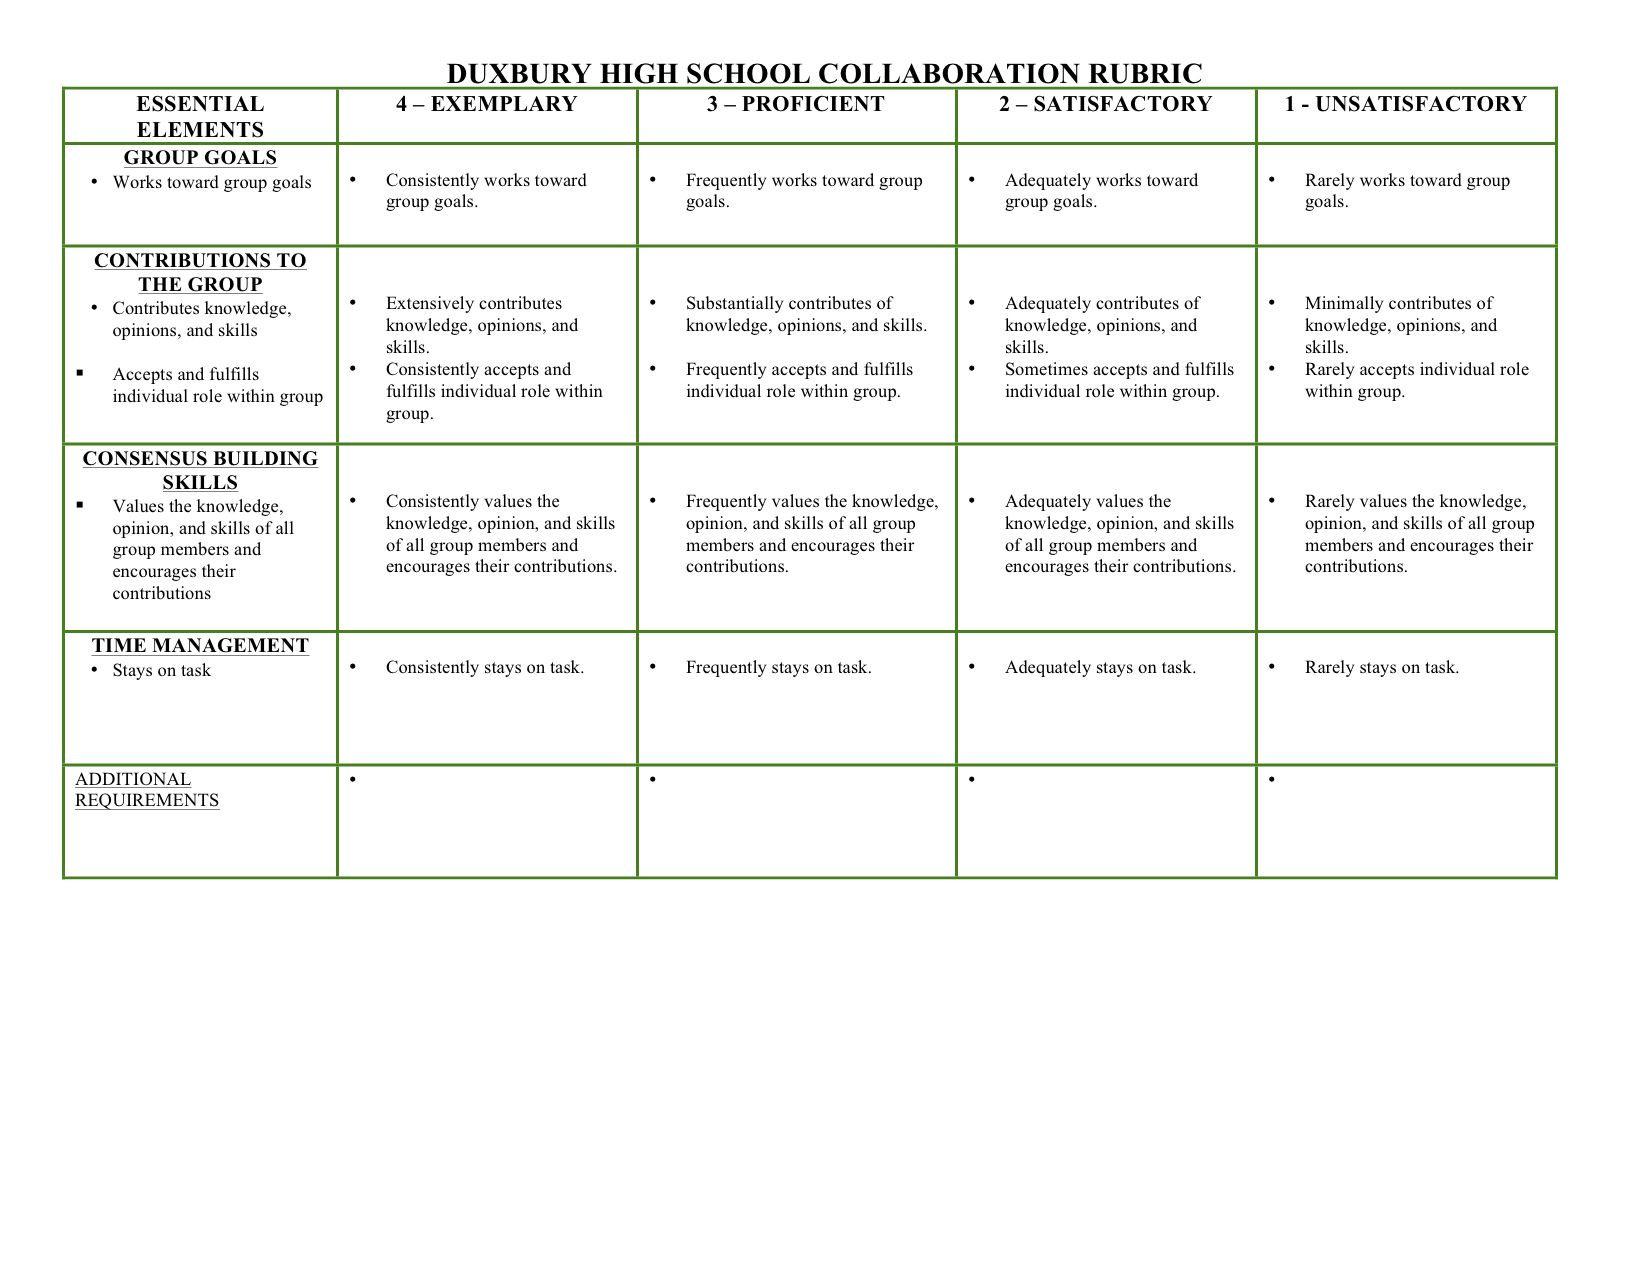 Collaborative Teaching Essay ~ Collaboration rubric download i always have trouble